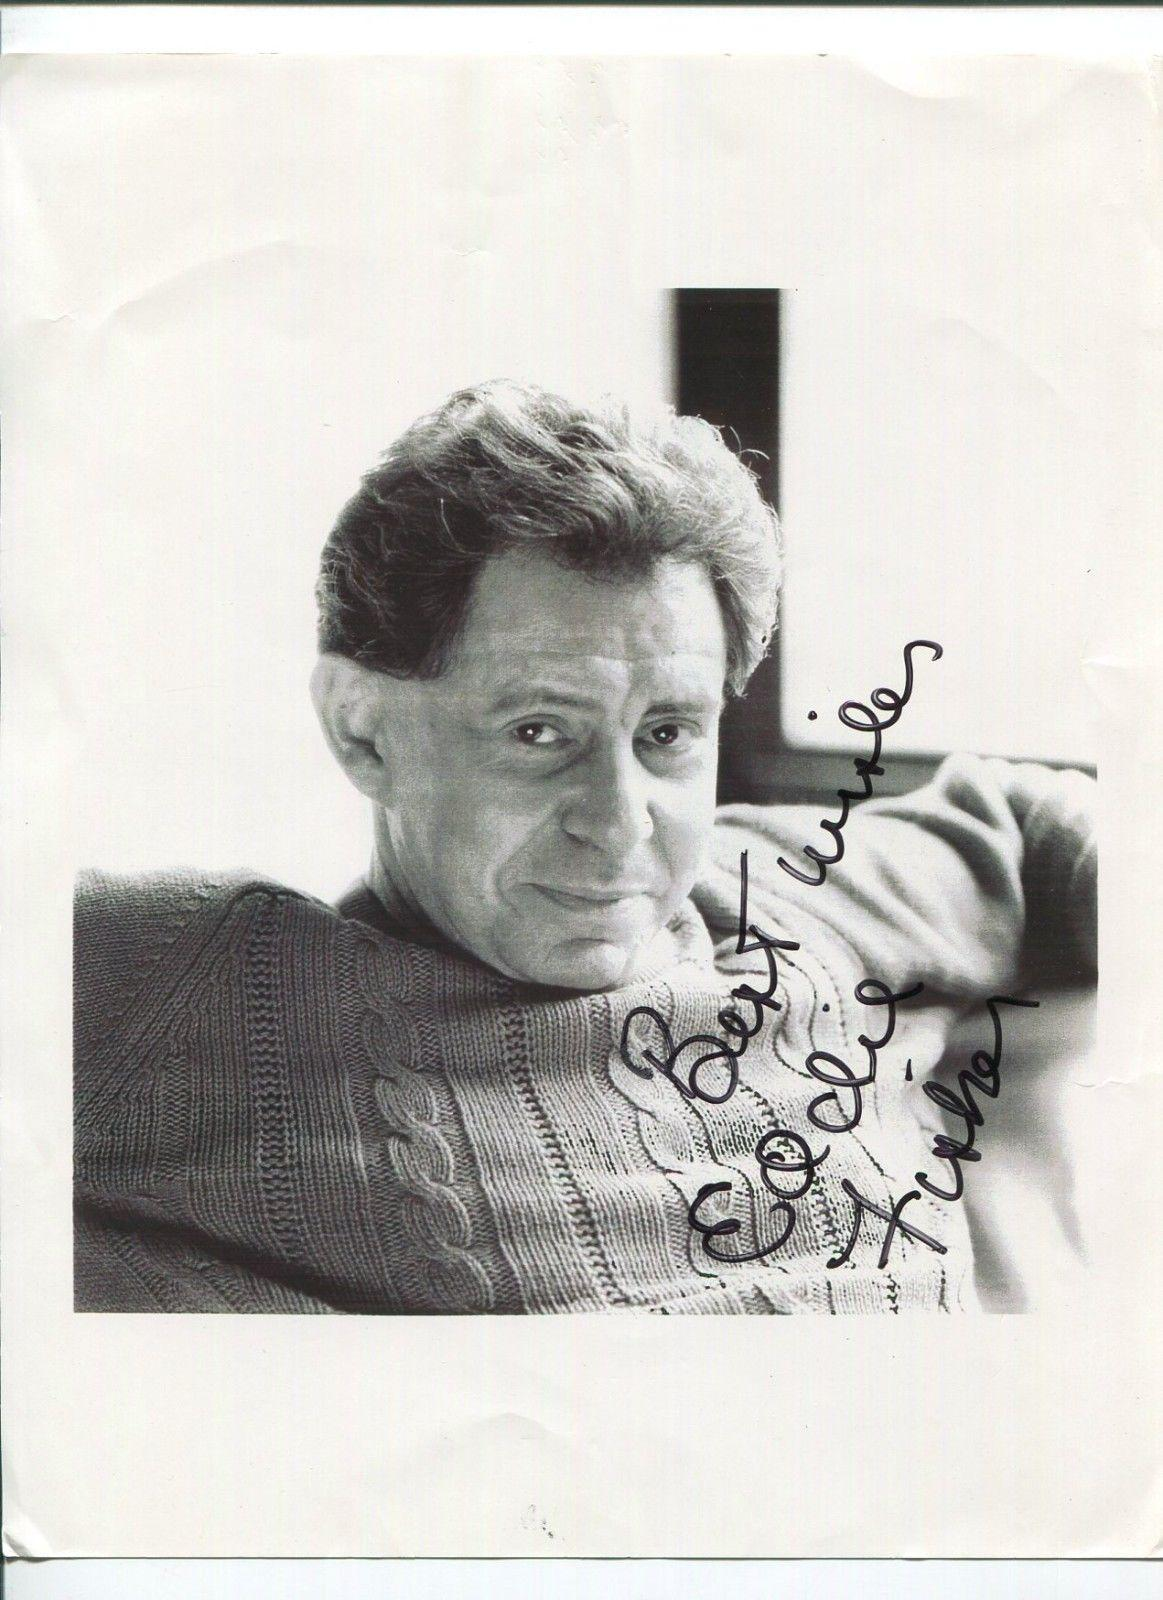 Autographed Eddie Fisher Photograph - Famous Singer Actor